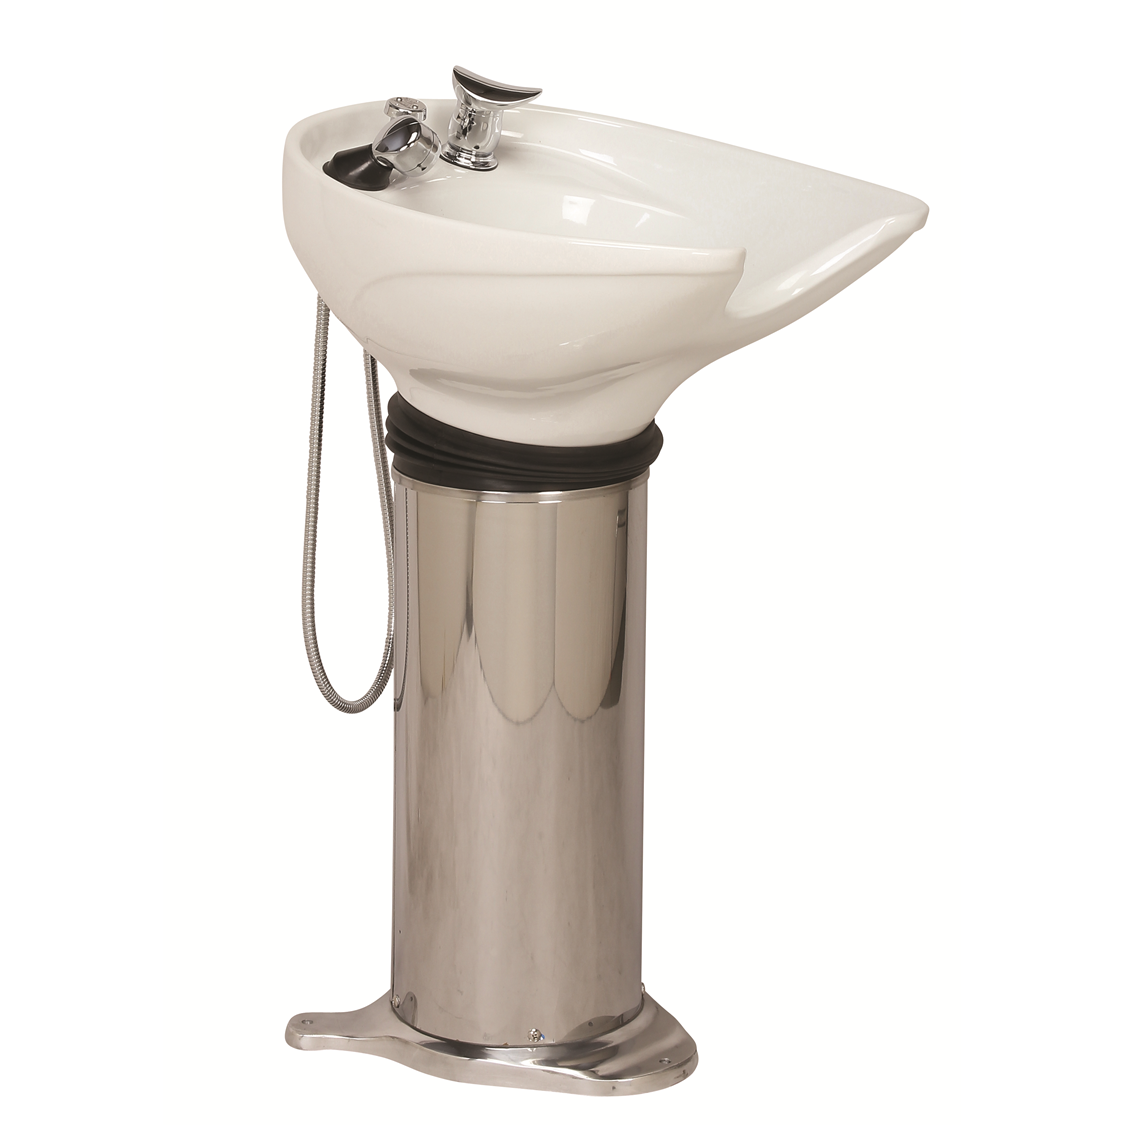 20B Pedestal Shampoo System - Garfield Commercial Enterprises Salon Equipment Spa Furniture Barber Chair Luxury